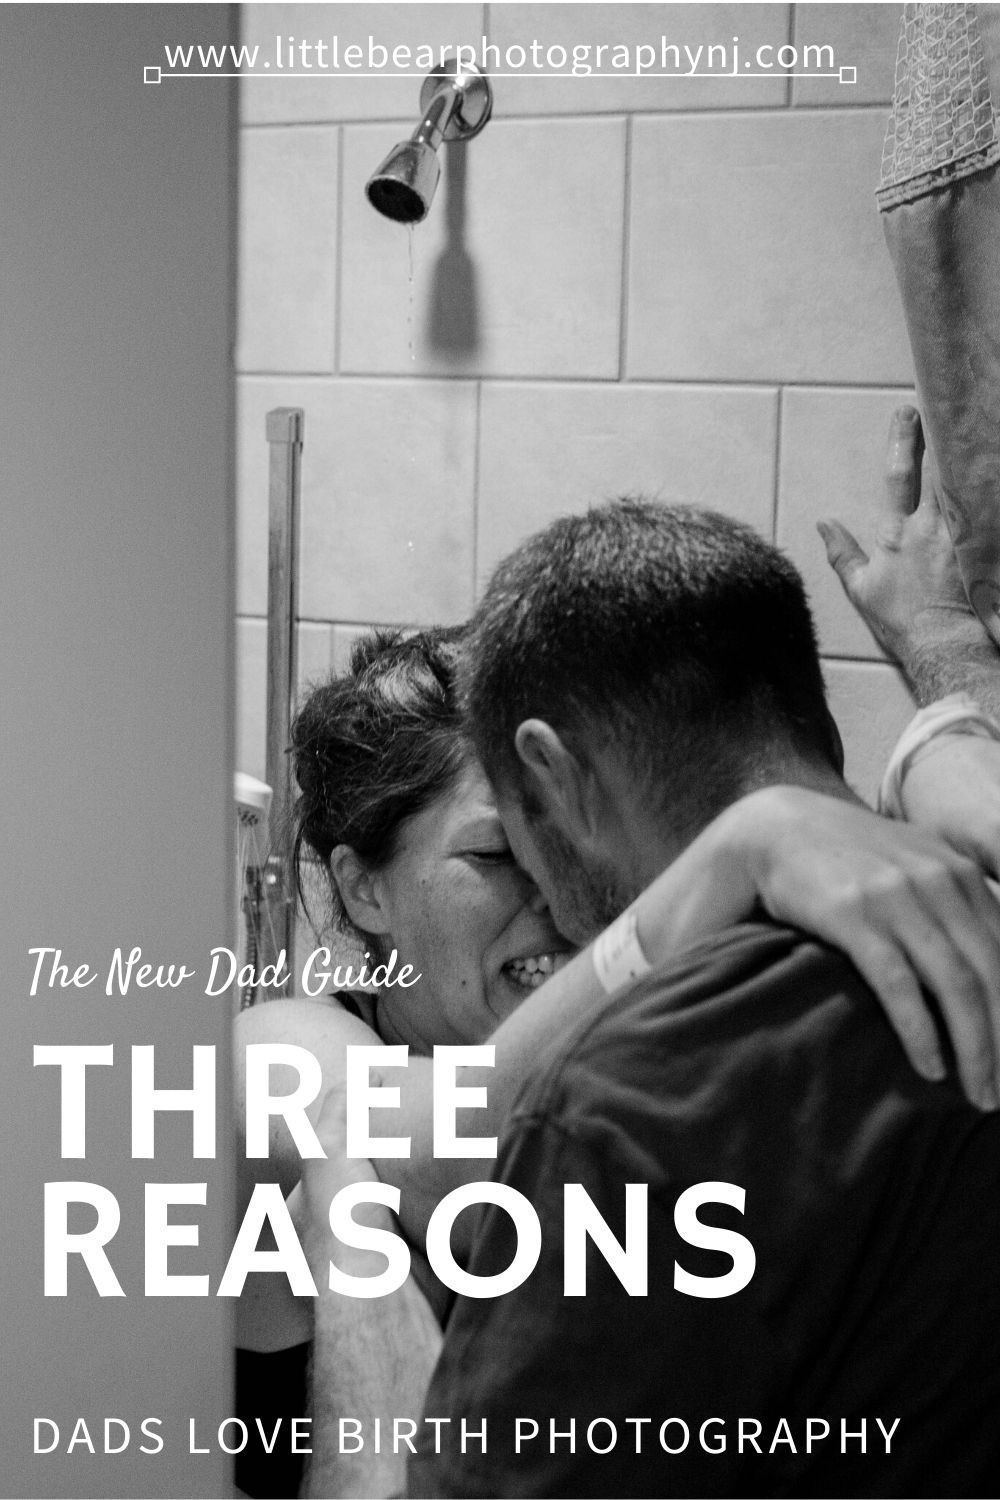 The New Dad Guide Three Reasons Dads Love Birth Photography black and white photo of mother laboring in shower in hospital room during labor while being supported by her husband natural unmedicated labor and birth in South Jersey Hospital Virtua Vorhees